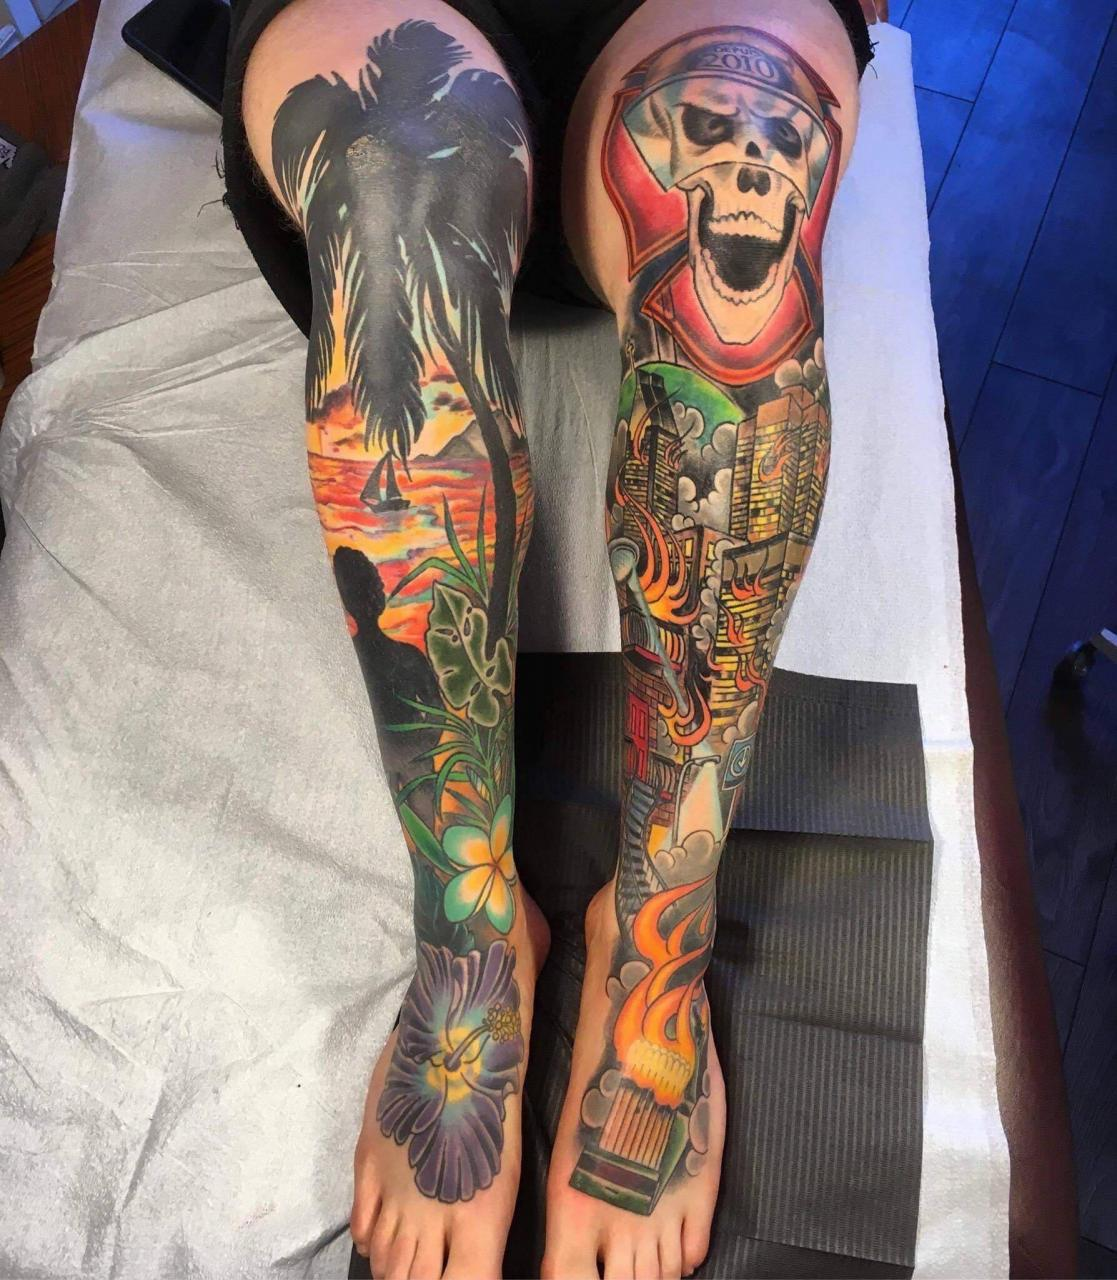 Figured it was time to participate... both my legs done by Reb Guinard at glamort tattoo in Montreal